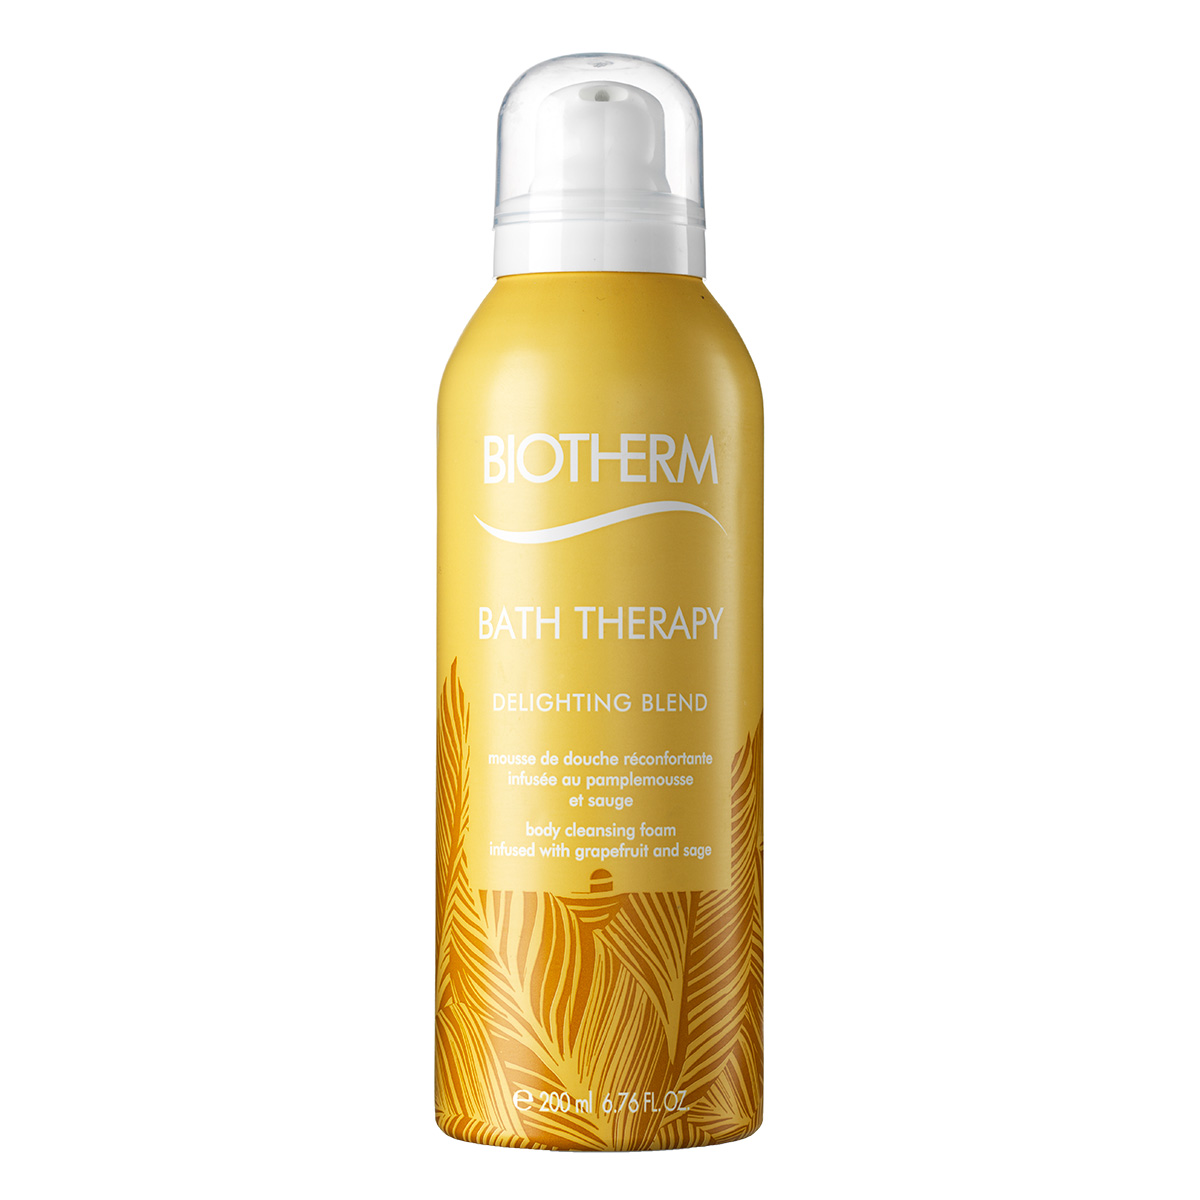 Billede af Biotherm Bath Therapy Delighting Blend Body Cleansing Foam - 200 ml